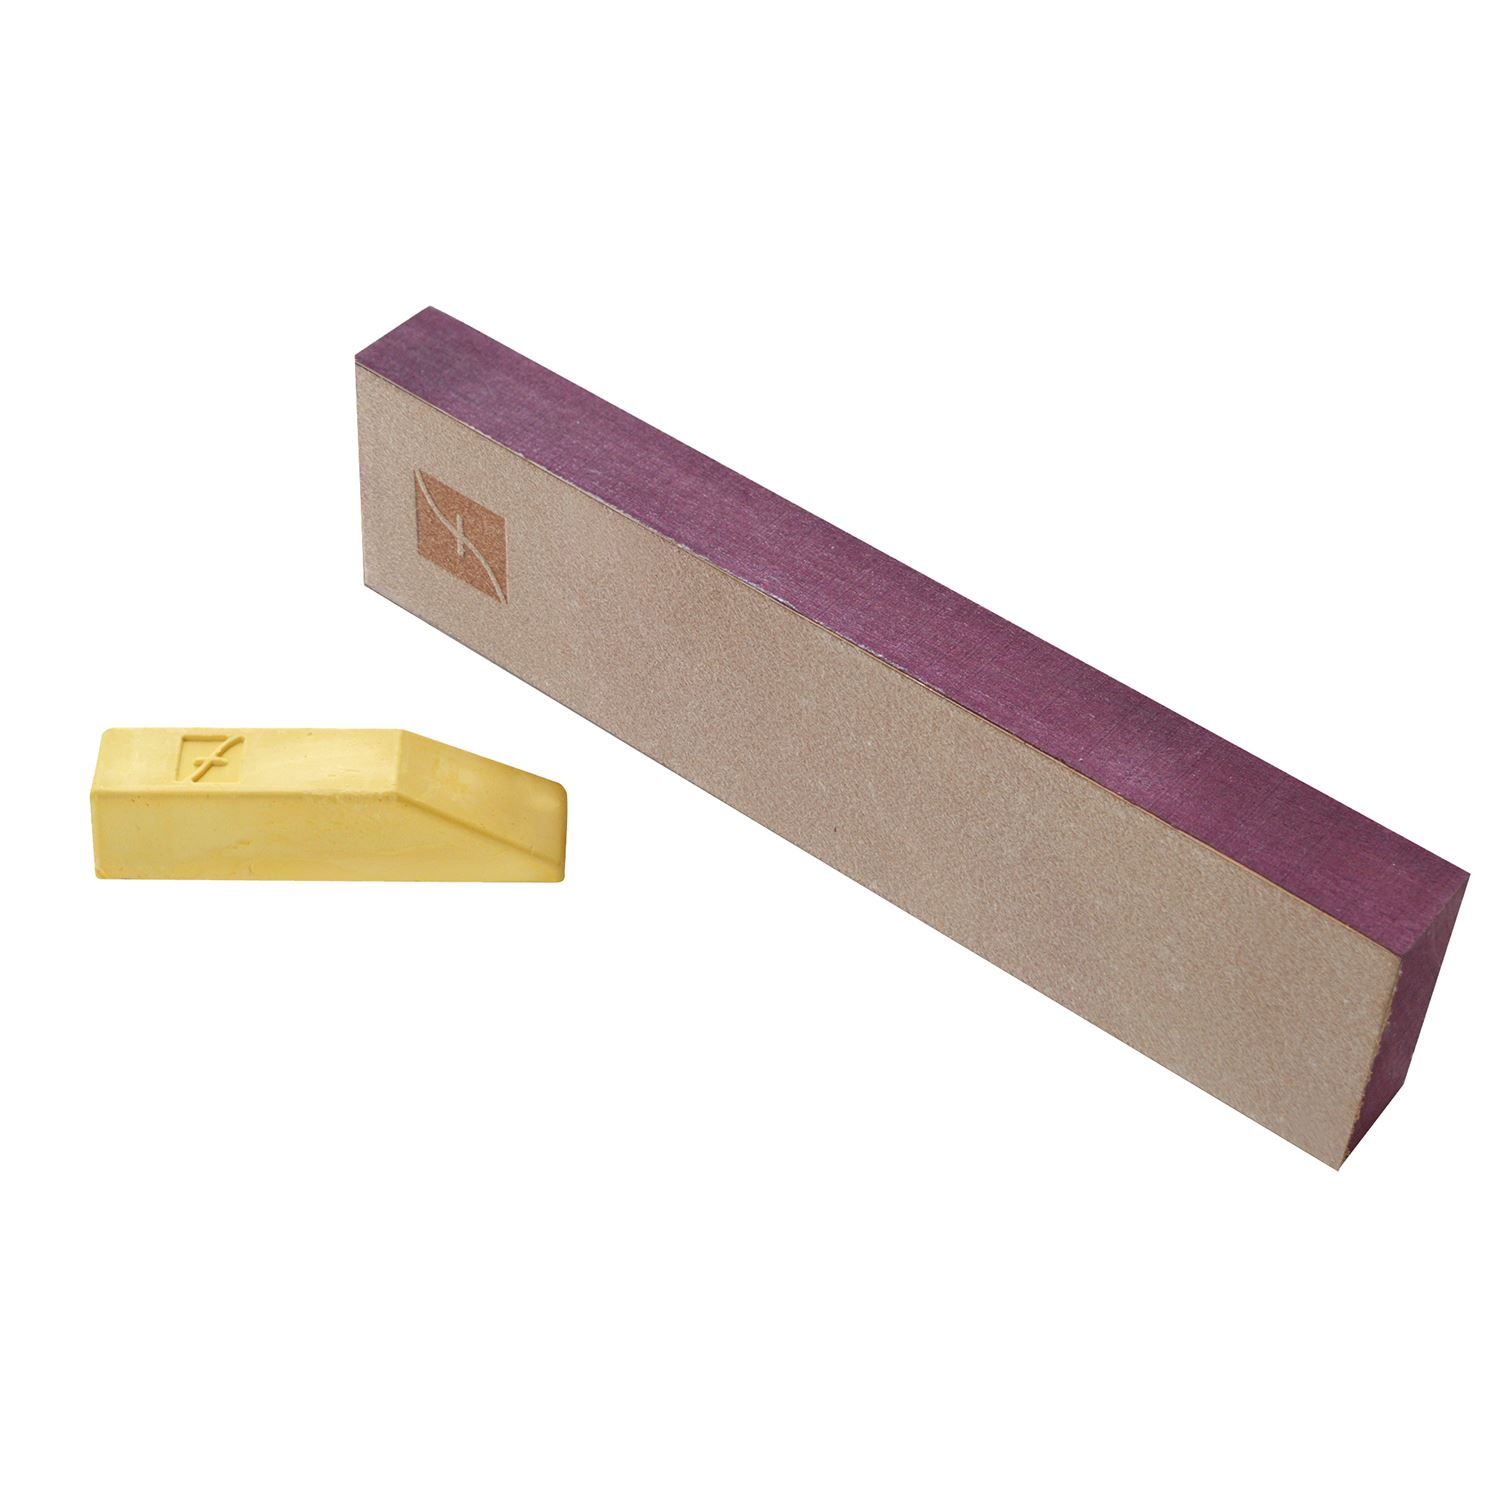 PW14 Flexcut Knife Strop